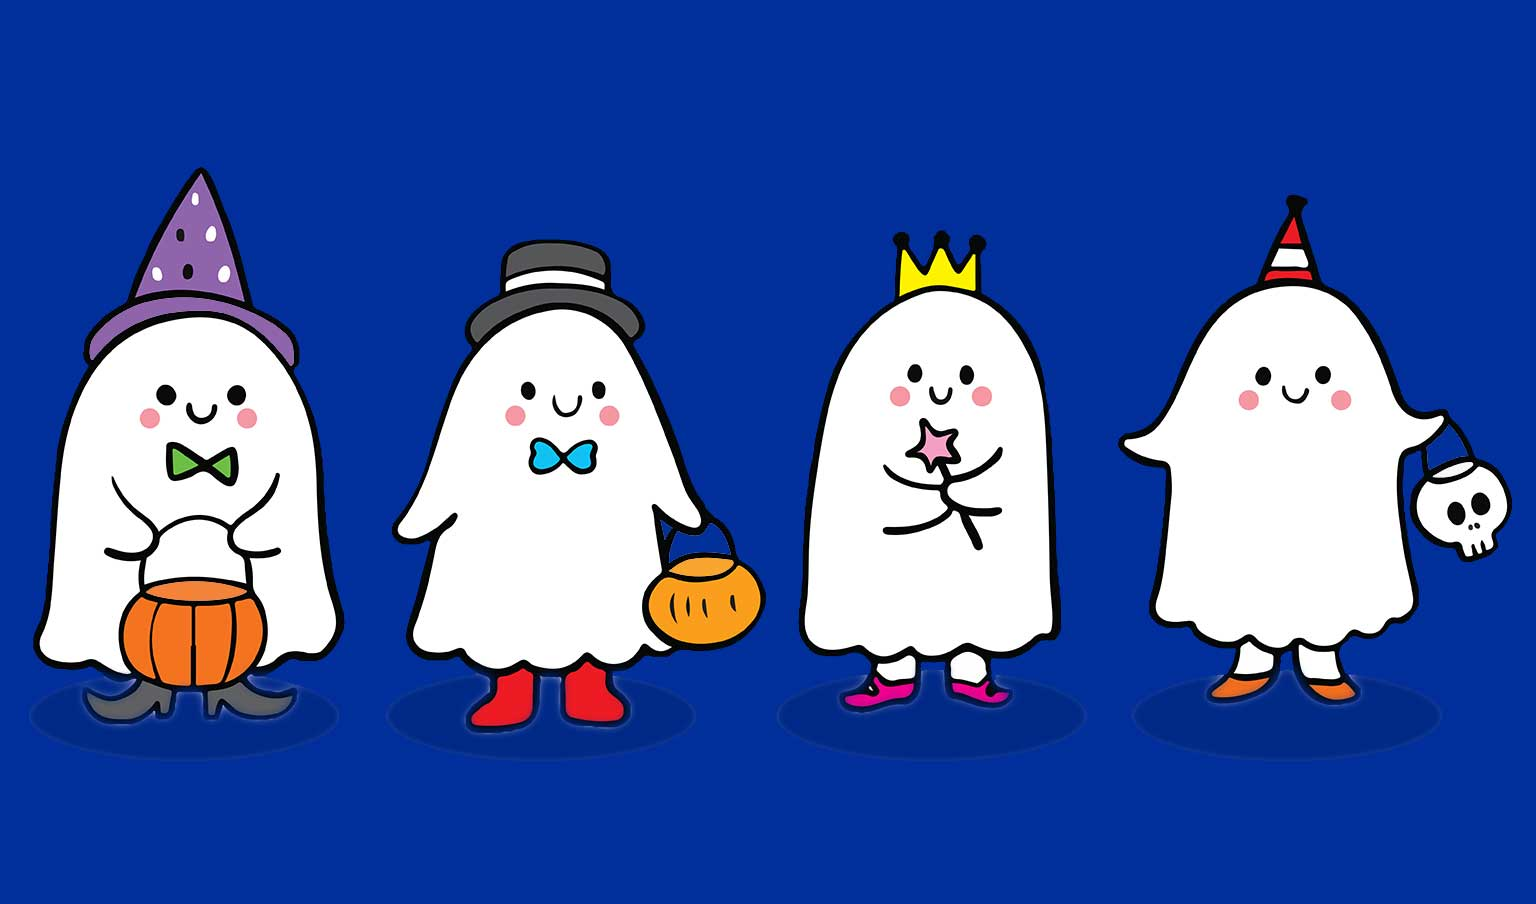 Booville at Vancouver Mall represented by 4 cute cartoon ghosts dressed up in costumes